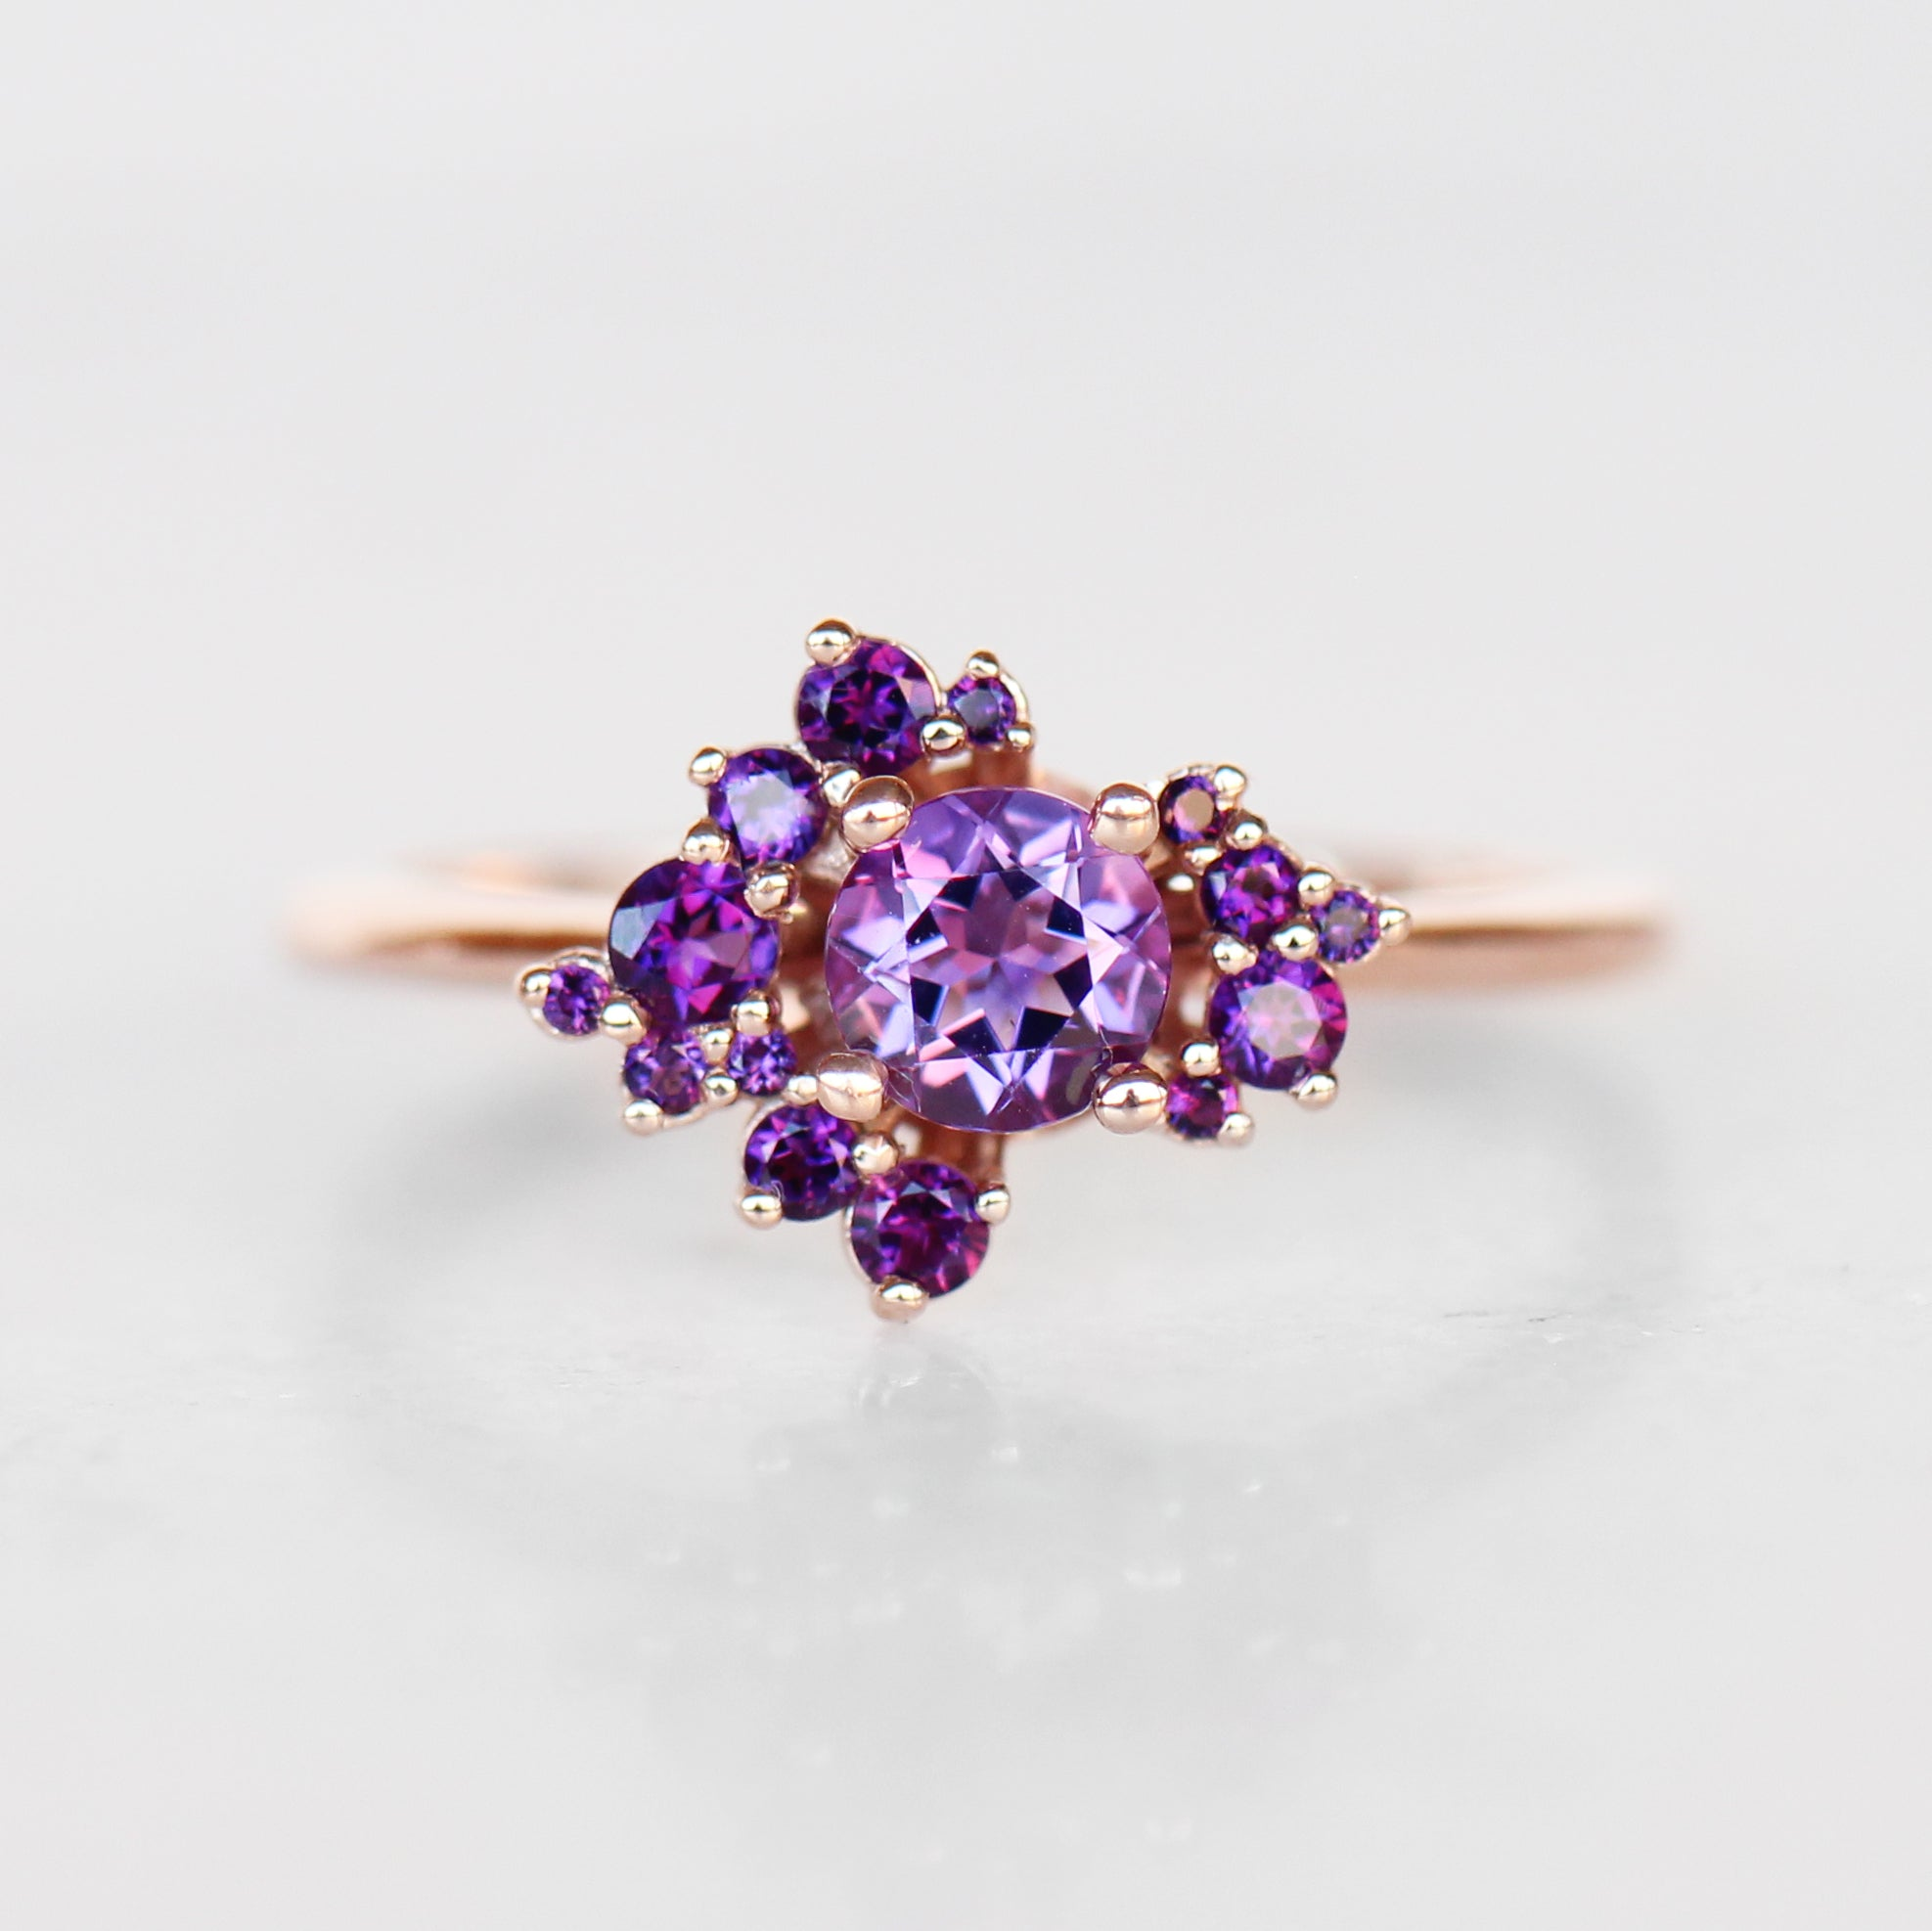 Orion Ring in all Amethyst - Cluster ring - Celestial Diamonds ® by Midwinter Co.